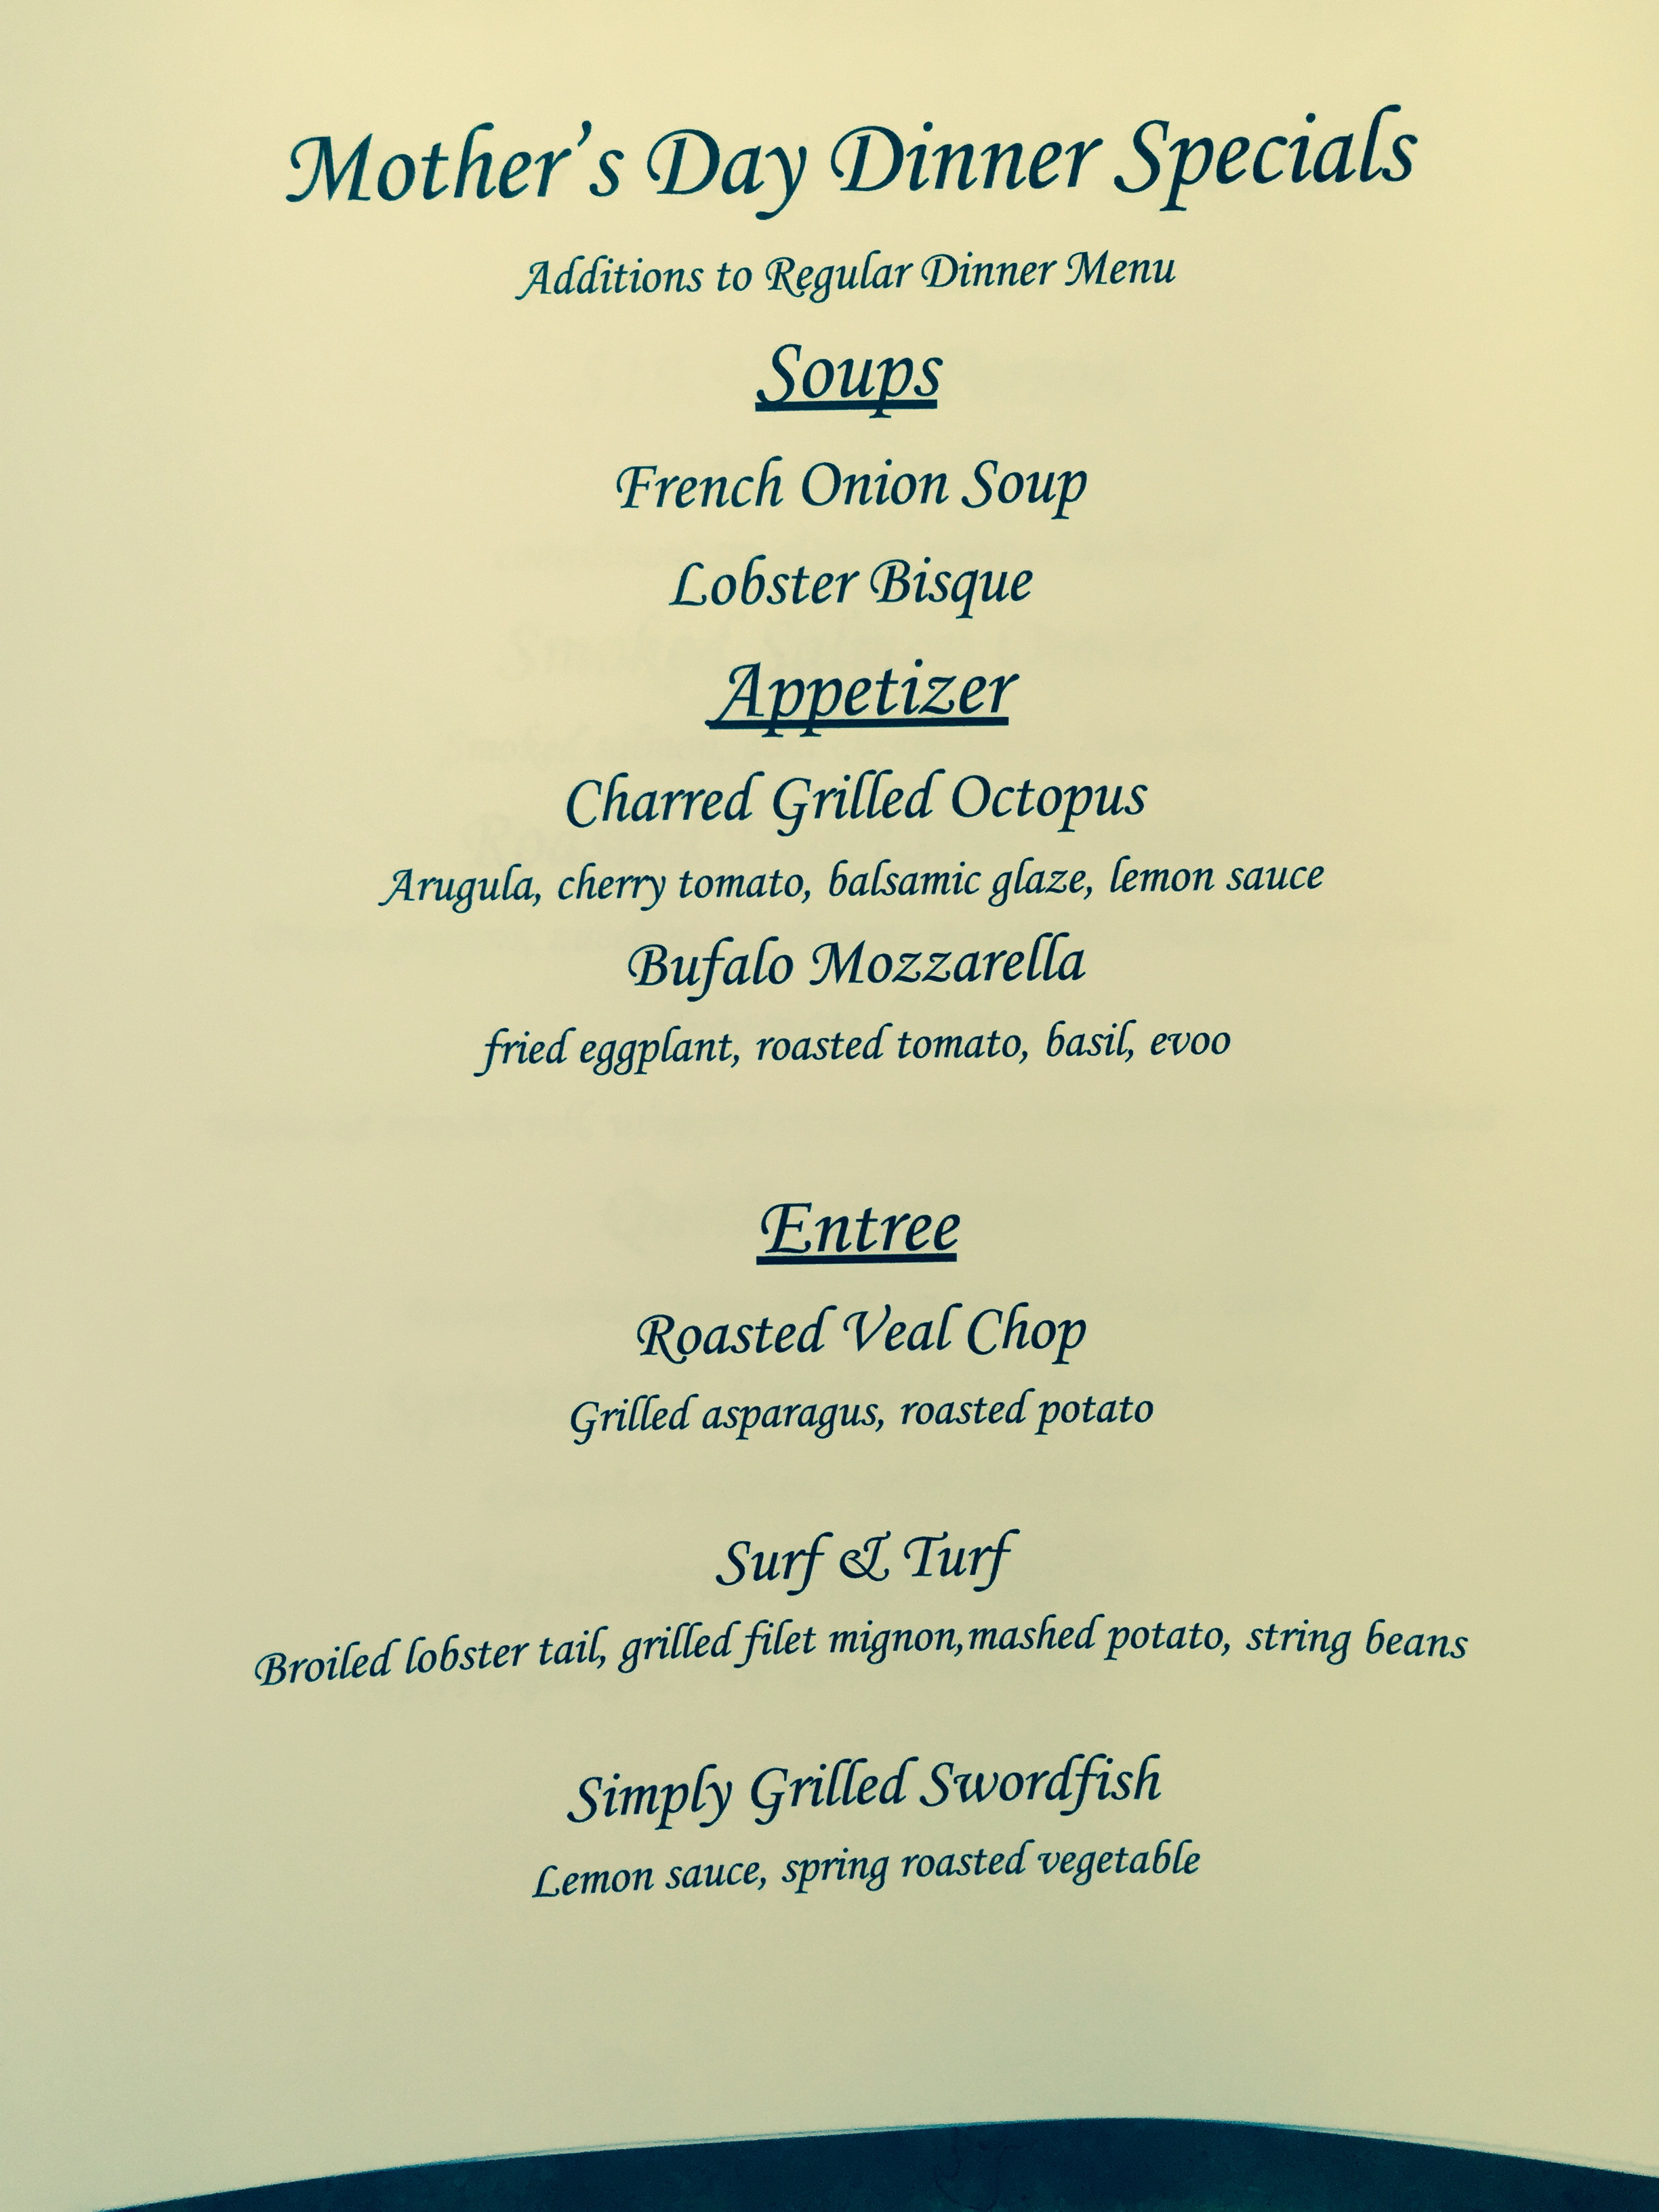 Mothers Day Dinner Restaurant  Morther's Day Dinner Specials